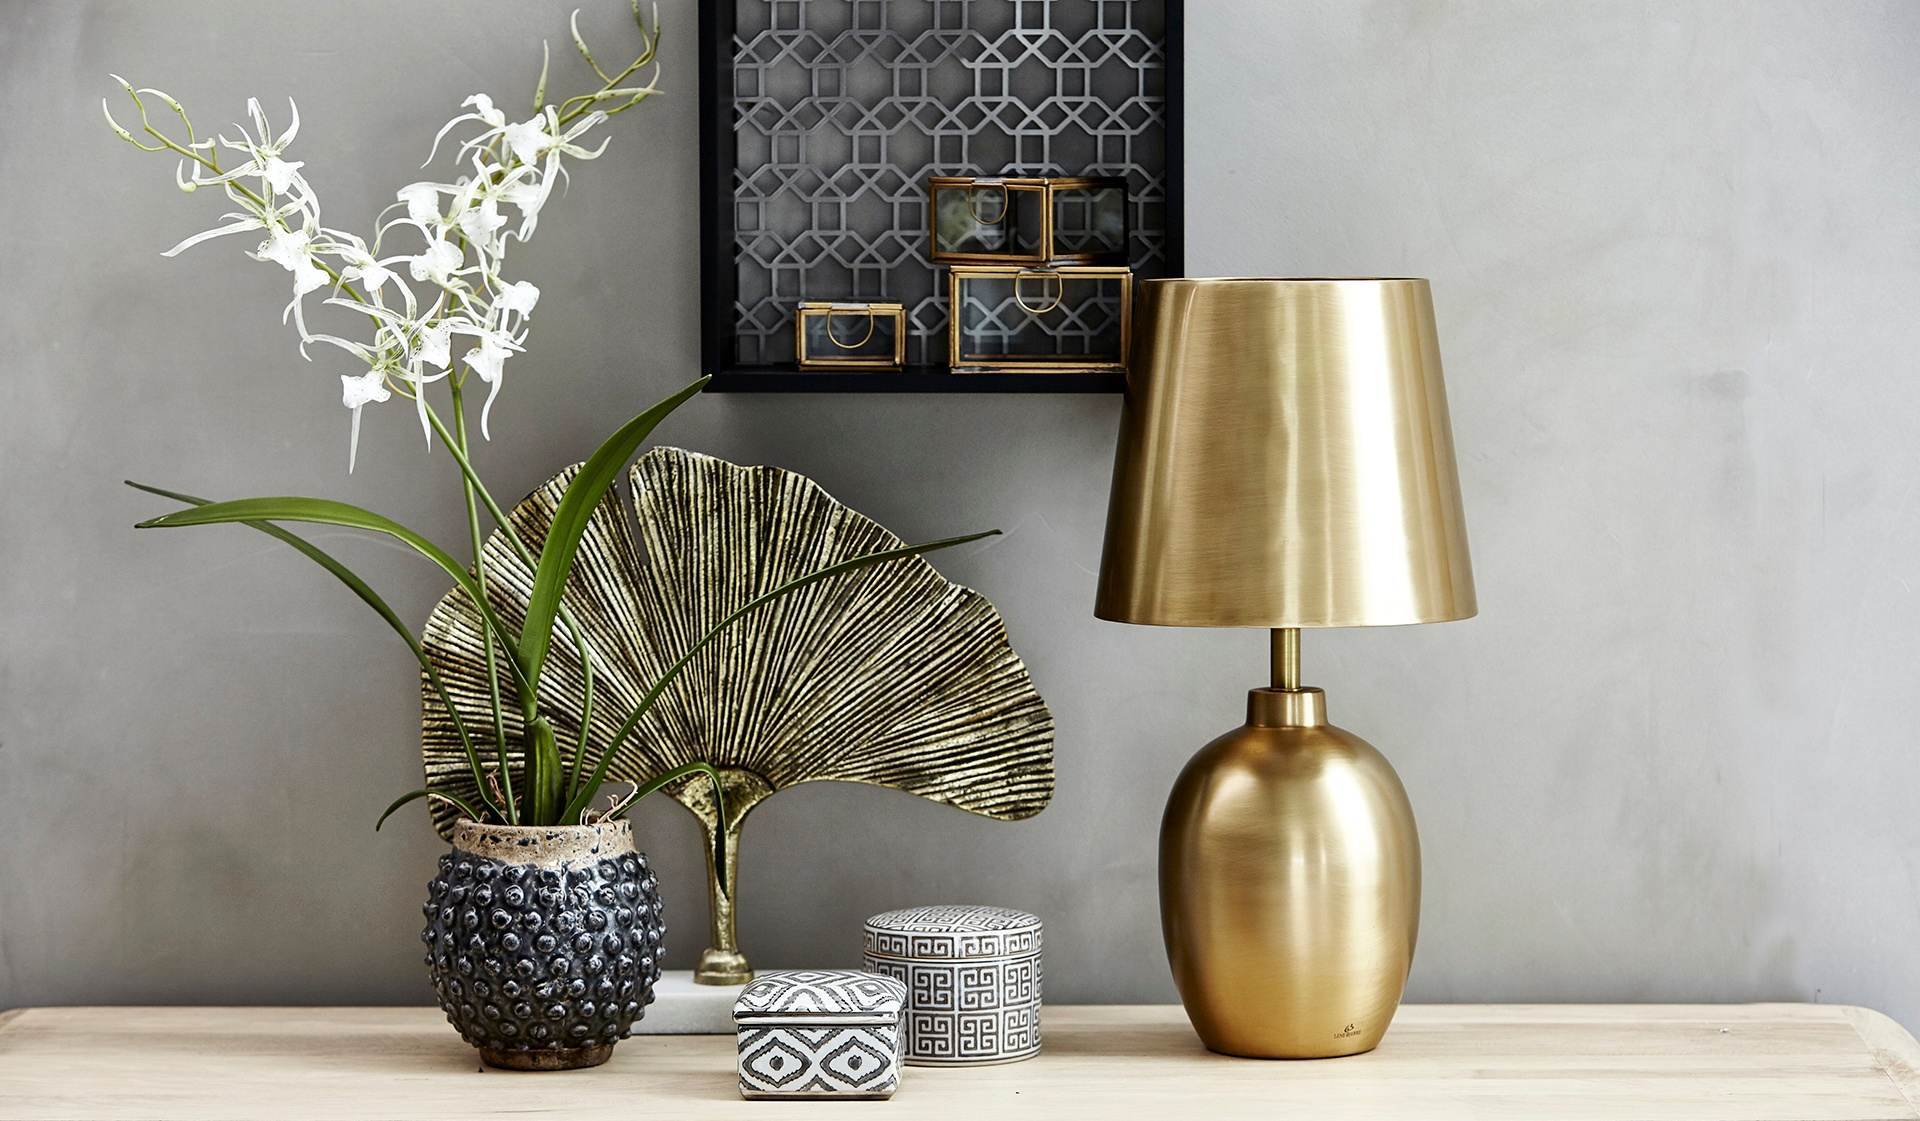 Flower pot in table with a gold lamp and small boxes